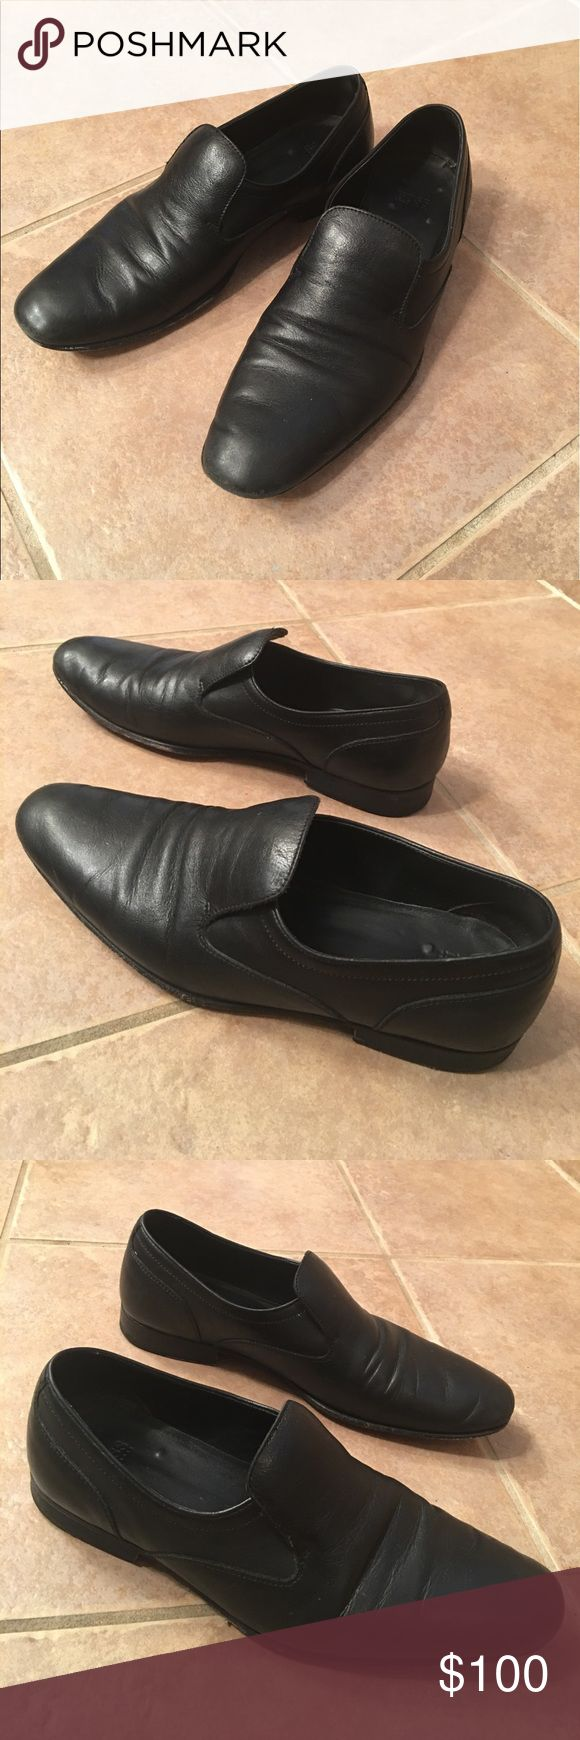 Hugo Boss men's slip on loafers GUC with imperfections as pictured Hugo Boss Shoes Loafers & Slip-Ons